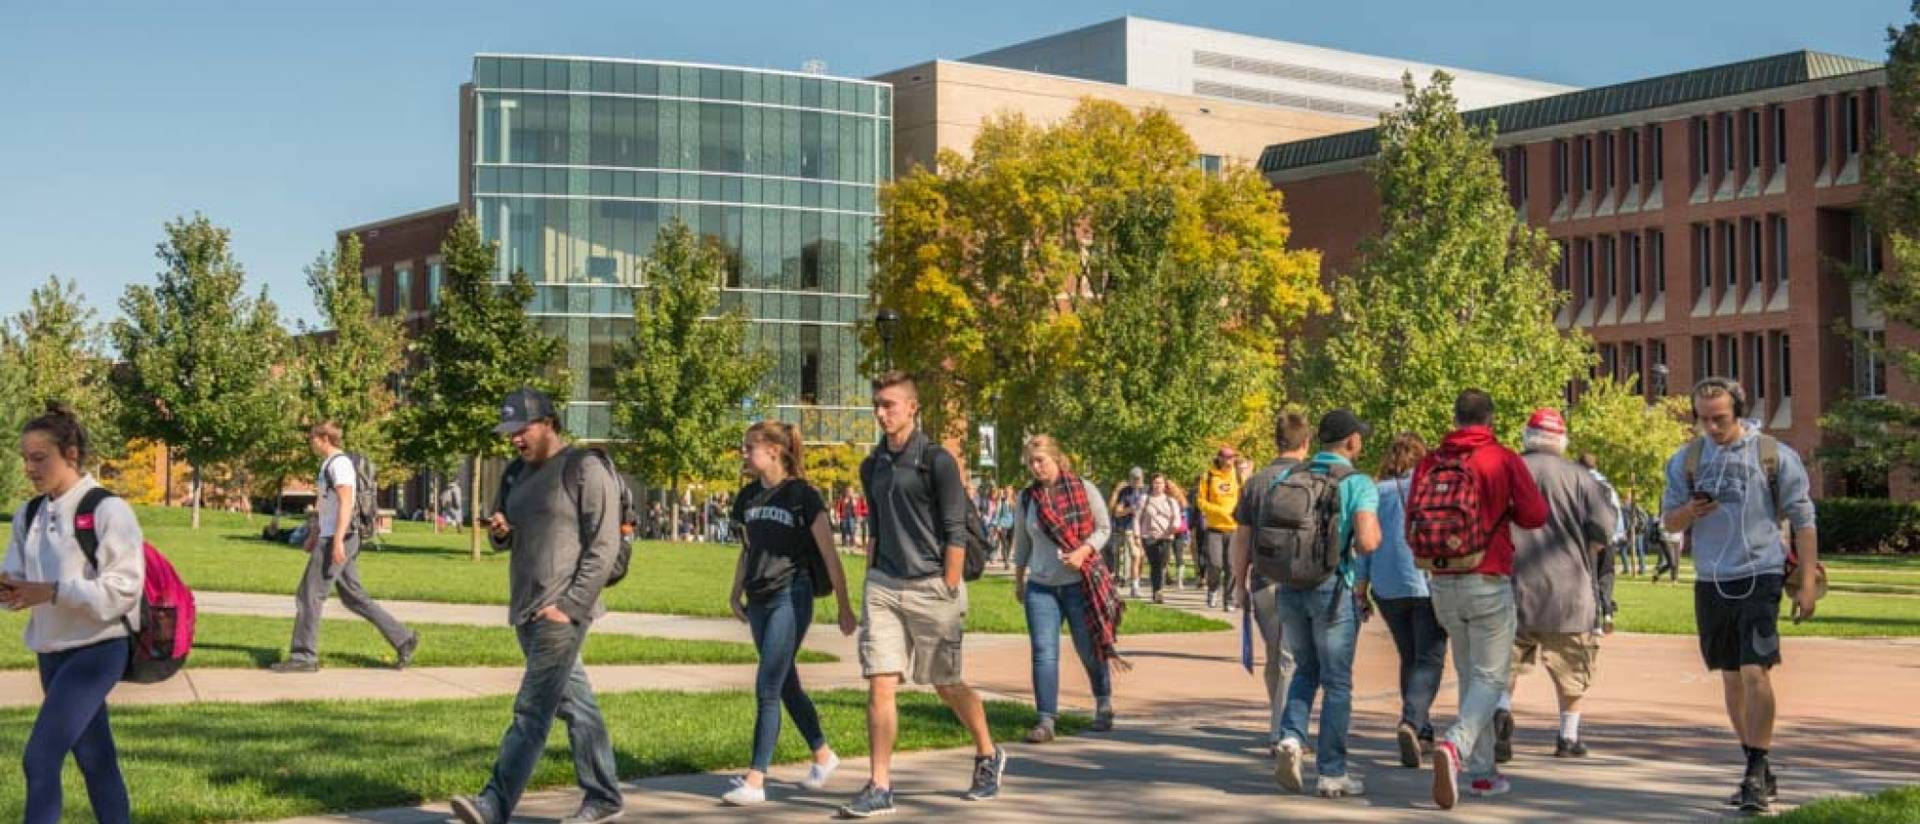 Students walking on lower campus at UW-Eau Claire